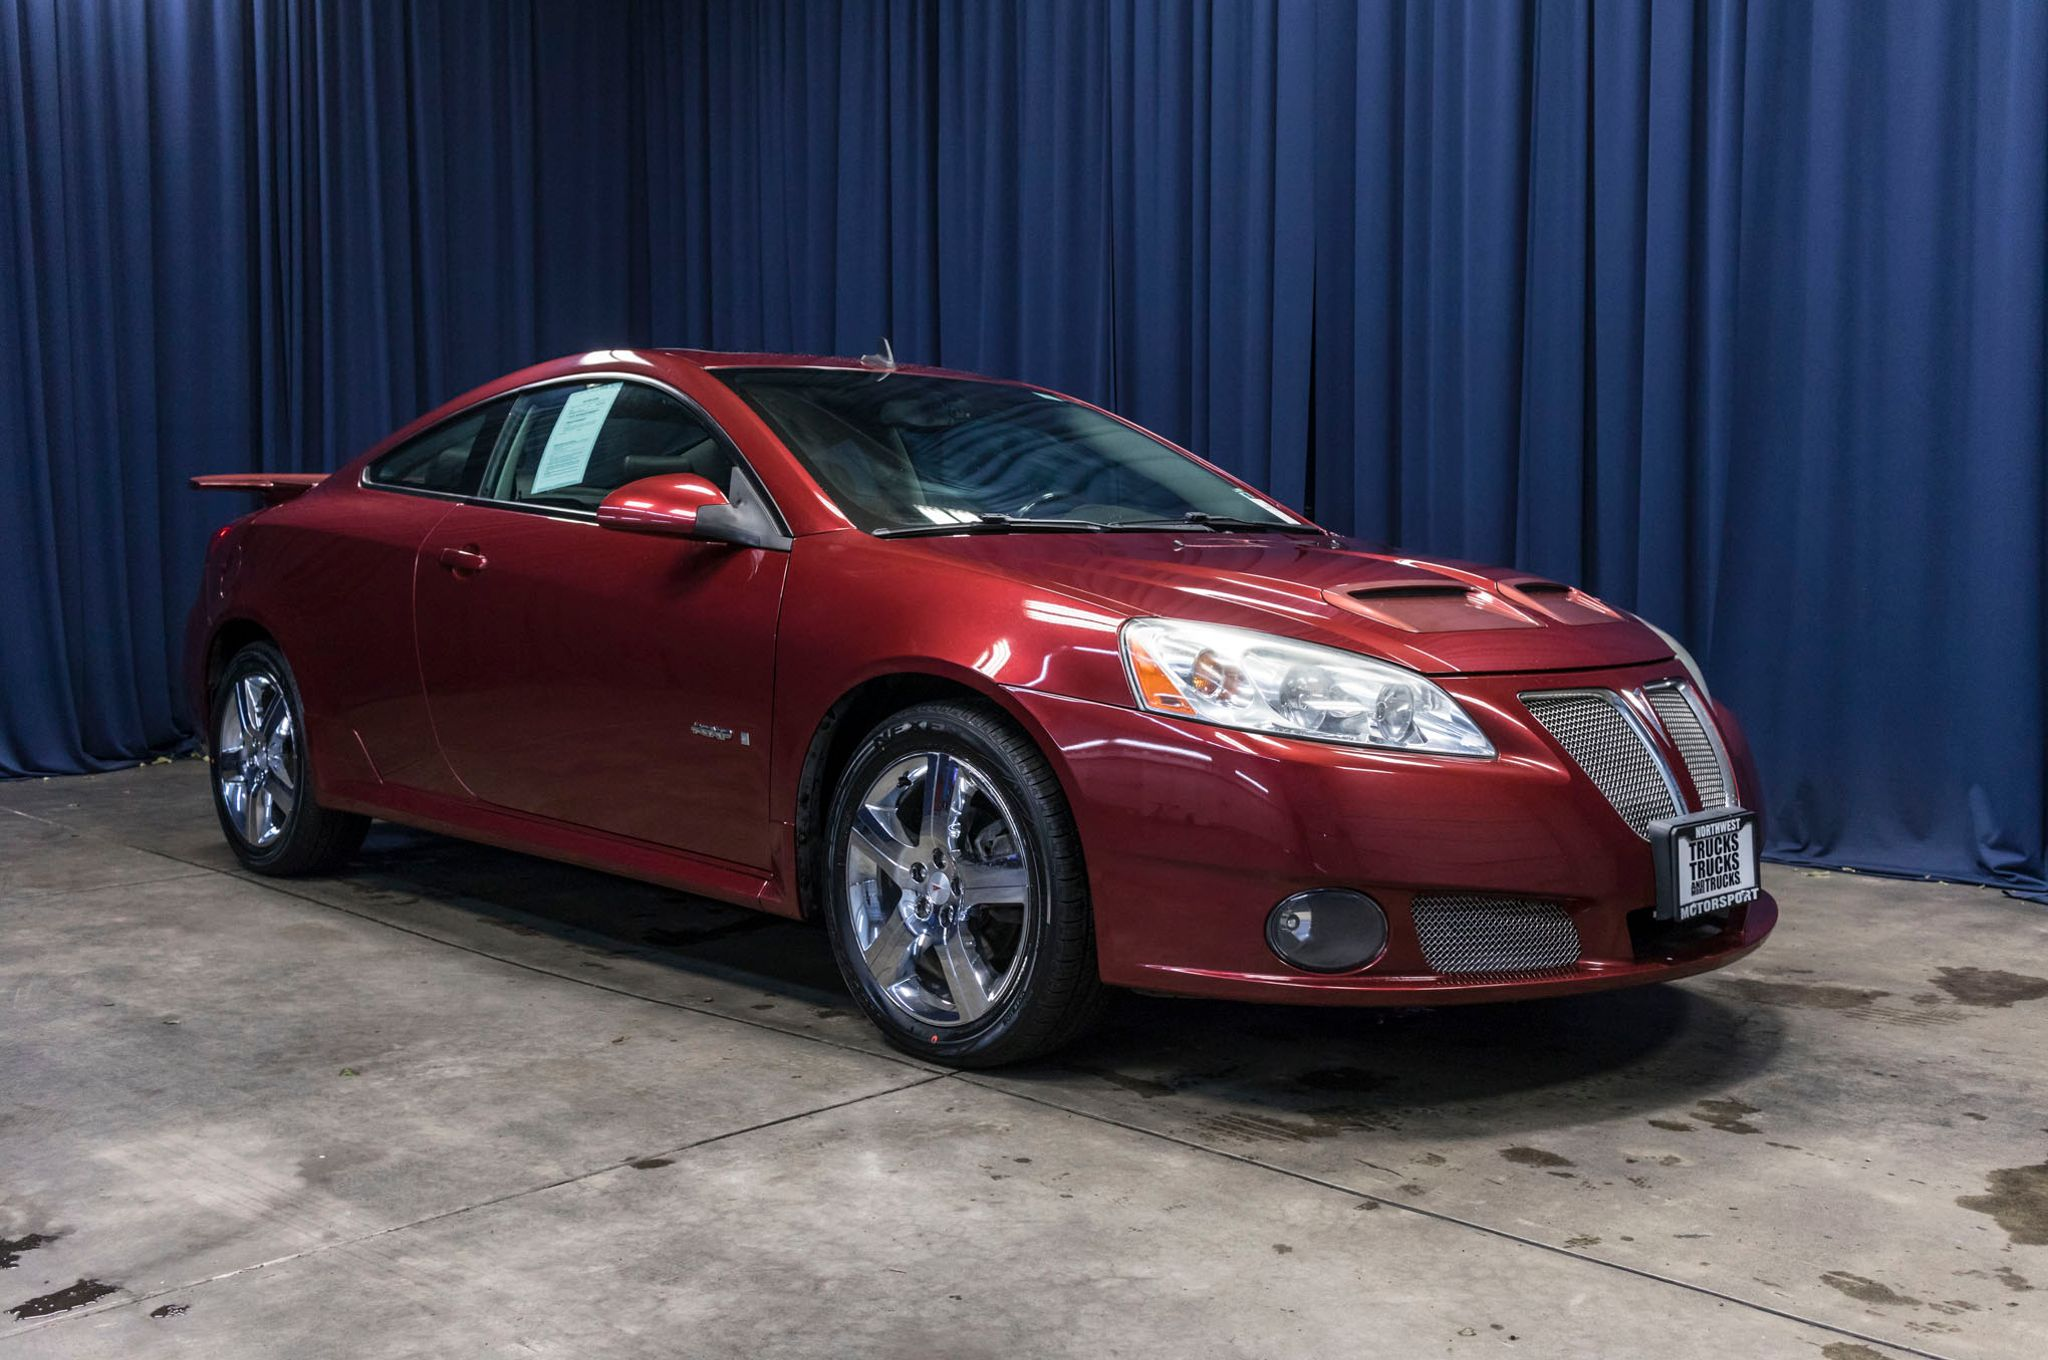 Used 2008 Pontiac G6 Gxp Fwd Coupe For Sale 44440a